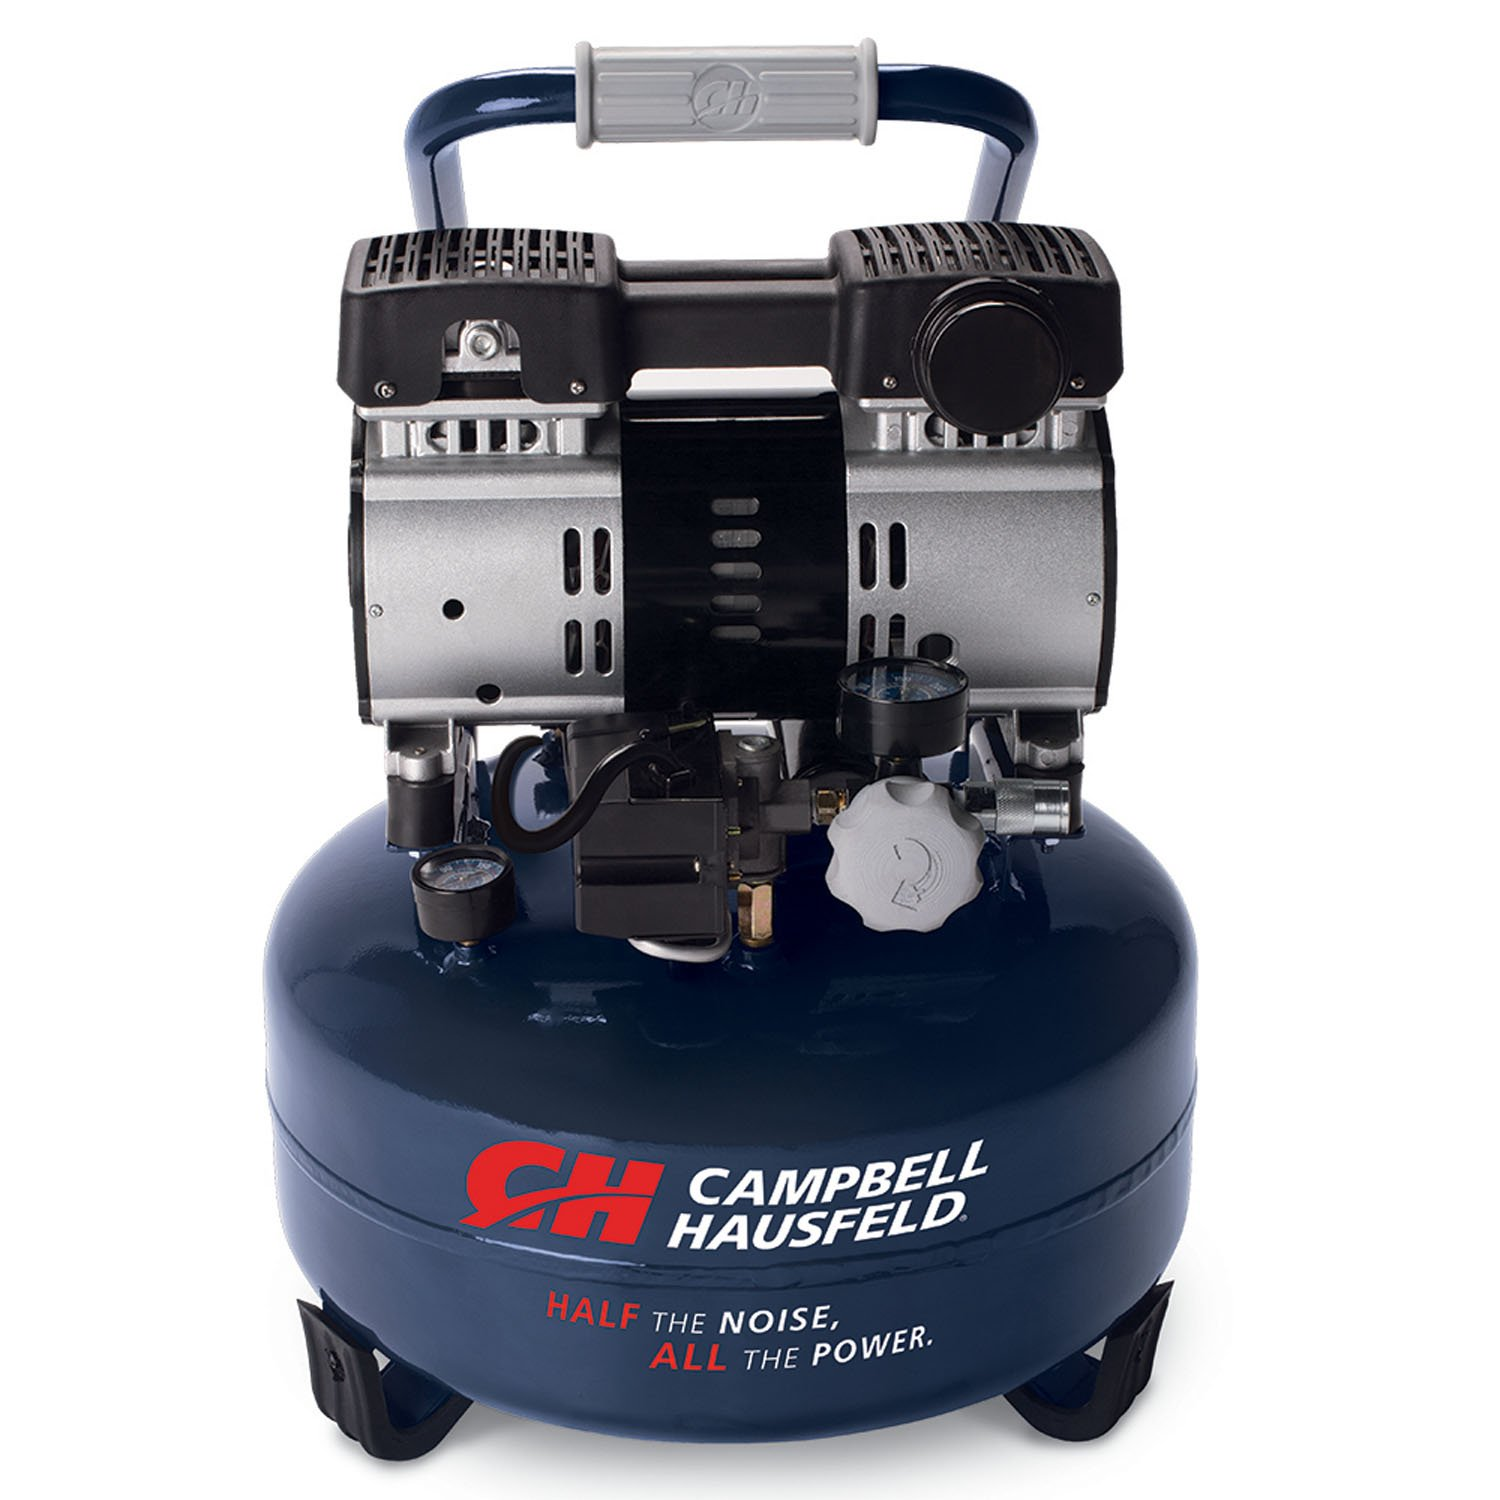 Quiet Air Compressor, 6 Gallon Pancake, Half the Noise, 4X Life, All the Power (Campbell Hausfeld DC060500)